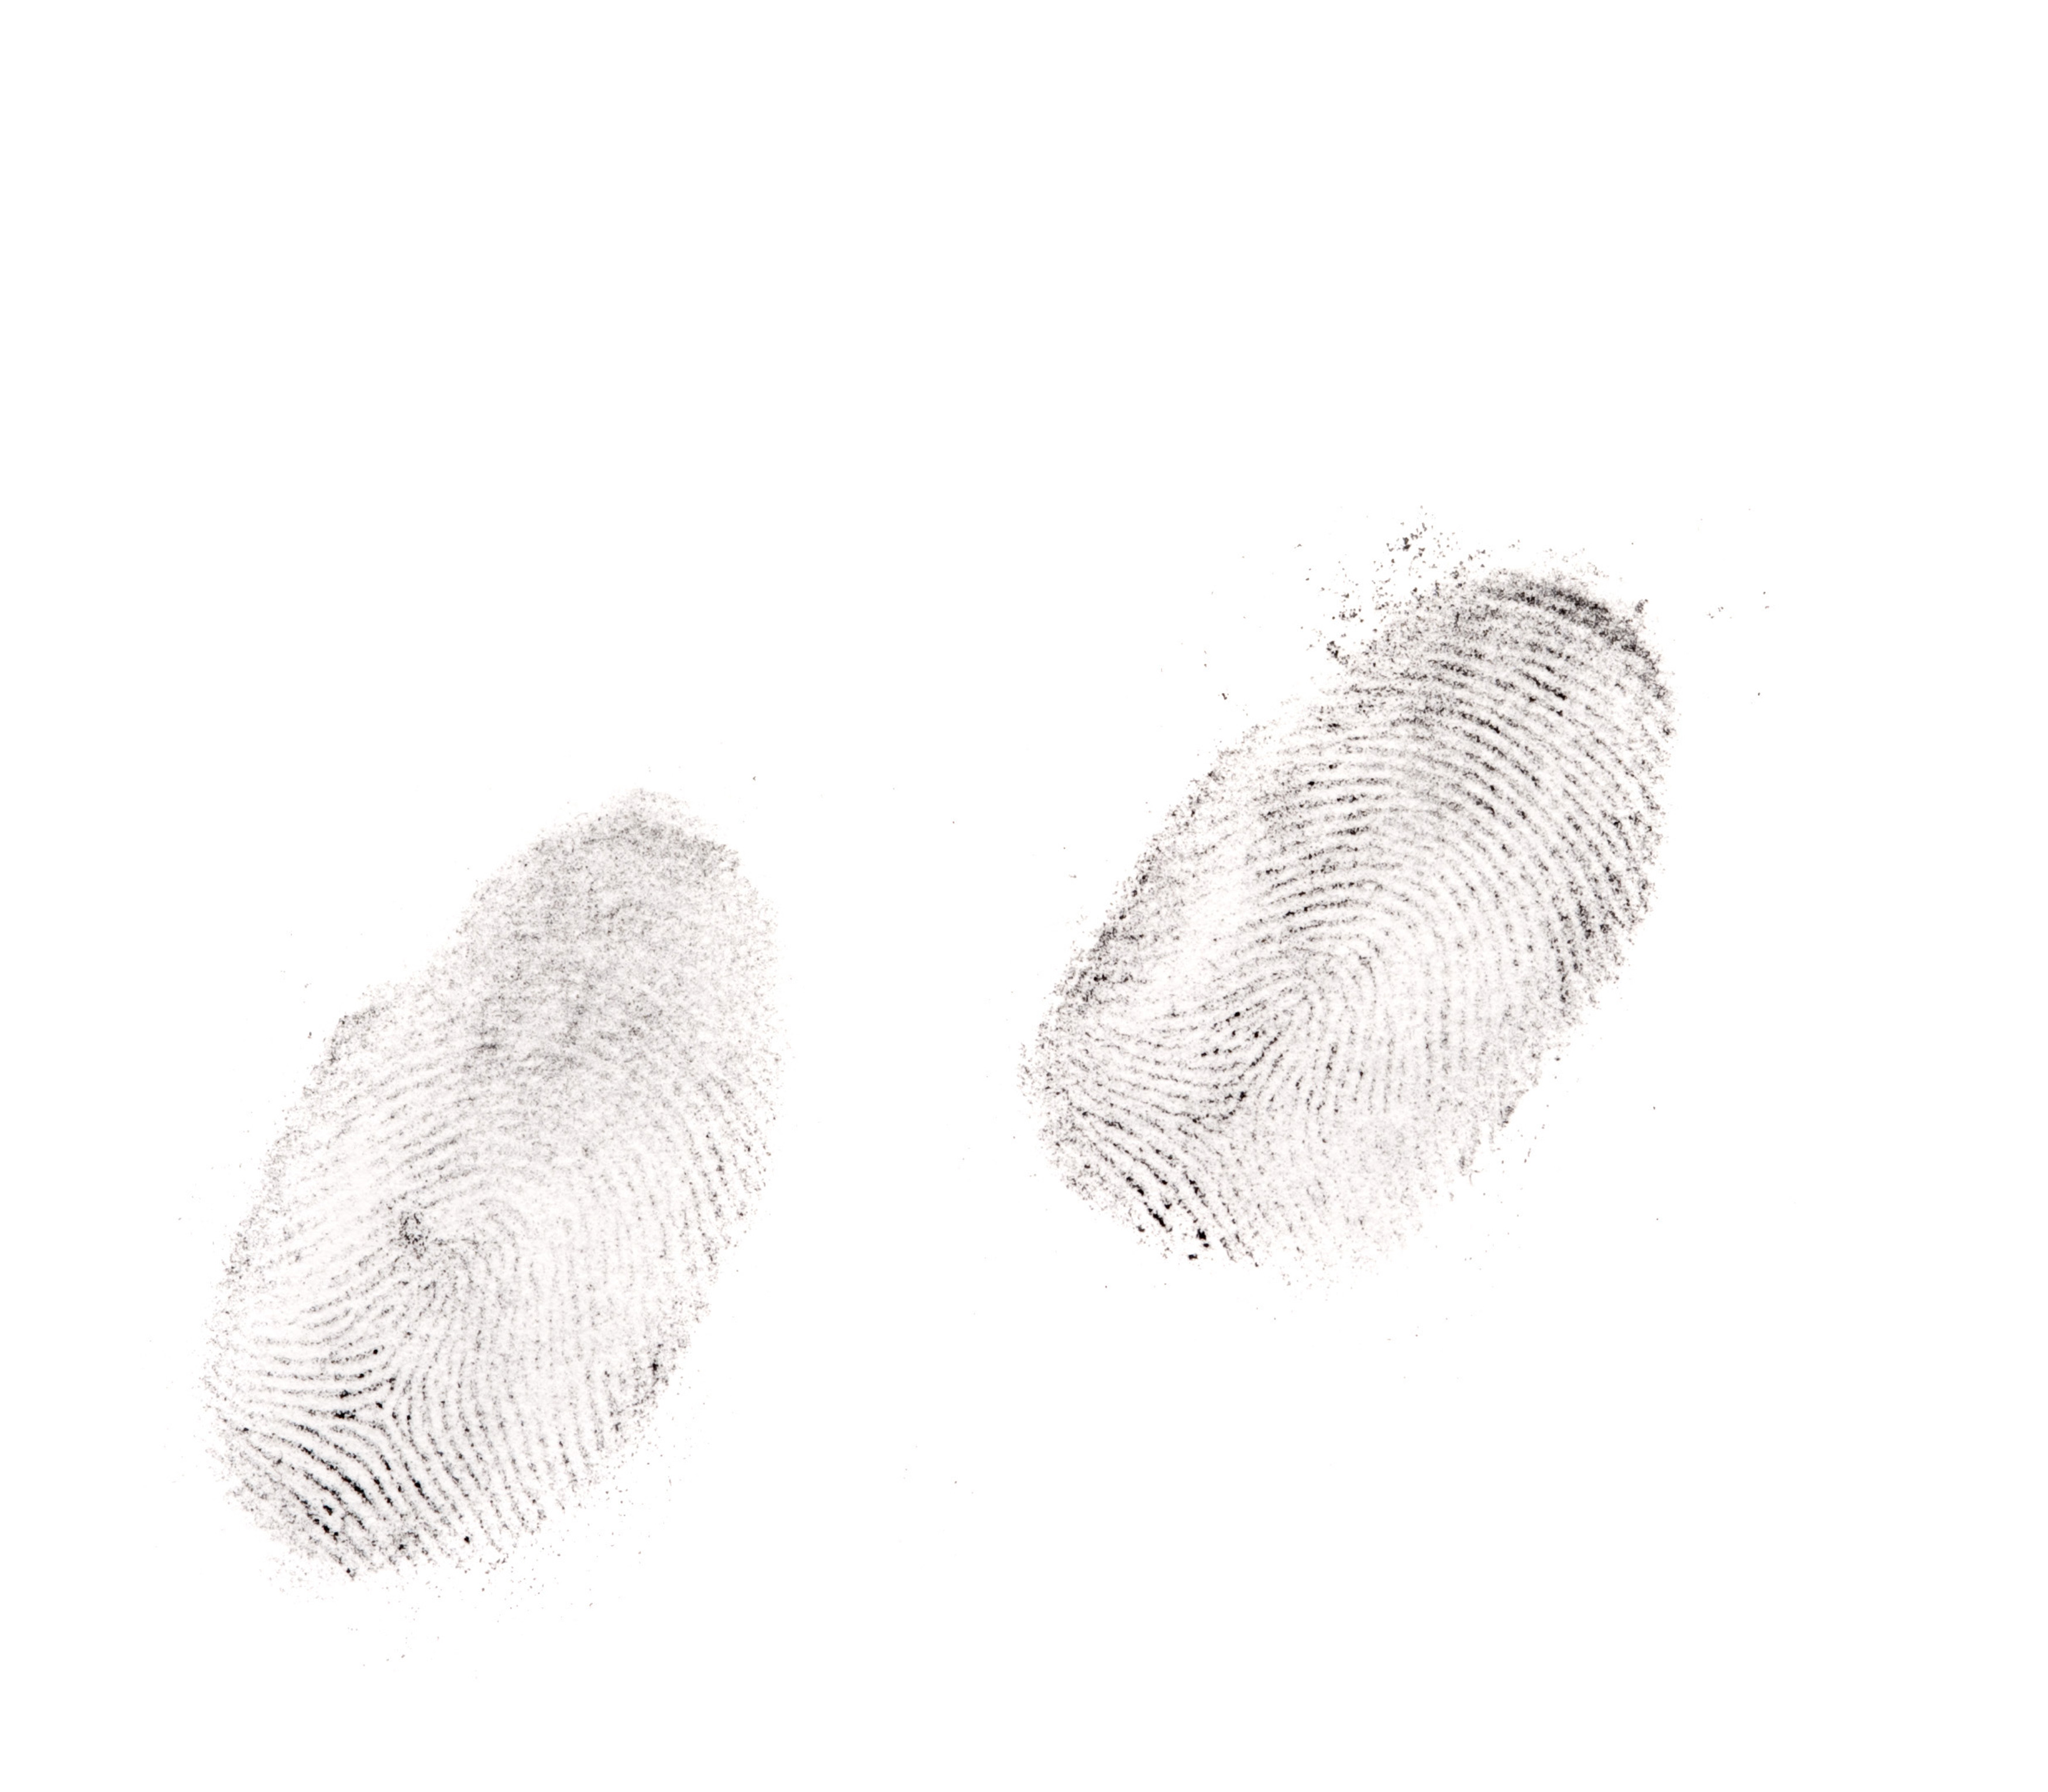 Two clear human fingerprints on a white background used to identify a person through the unique pattern of ridges and whorls for security or in a crime